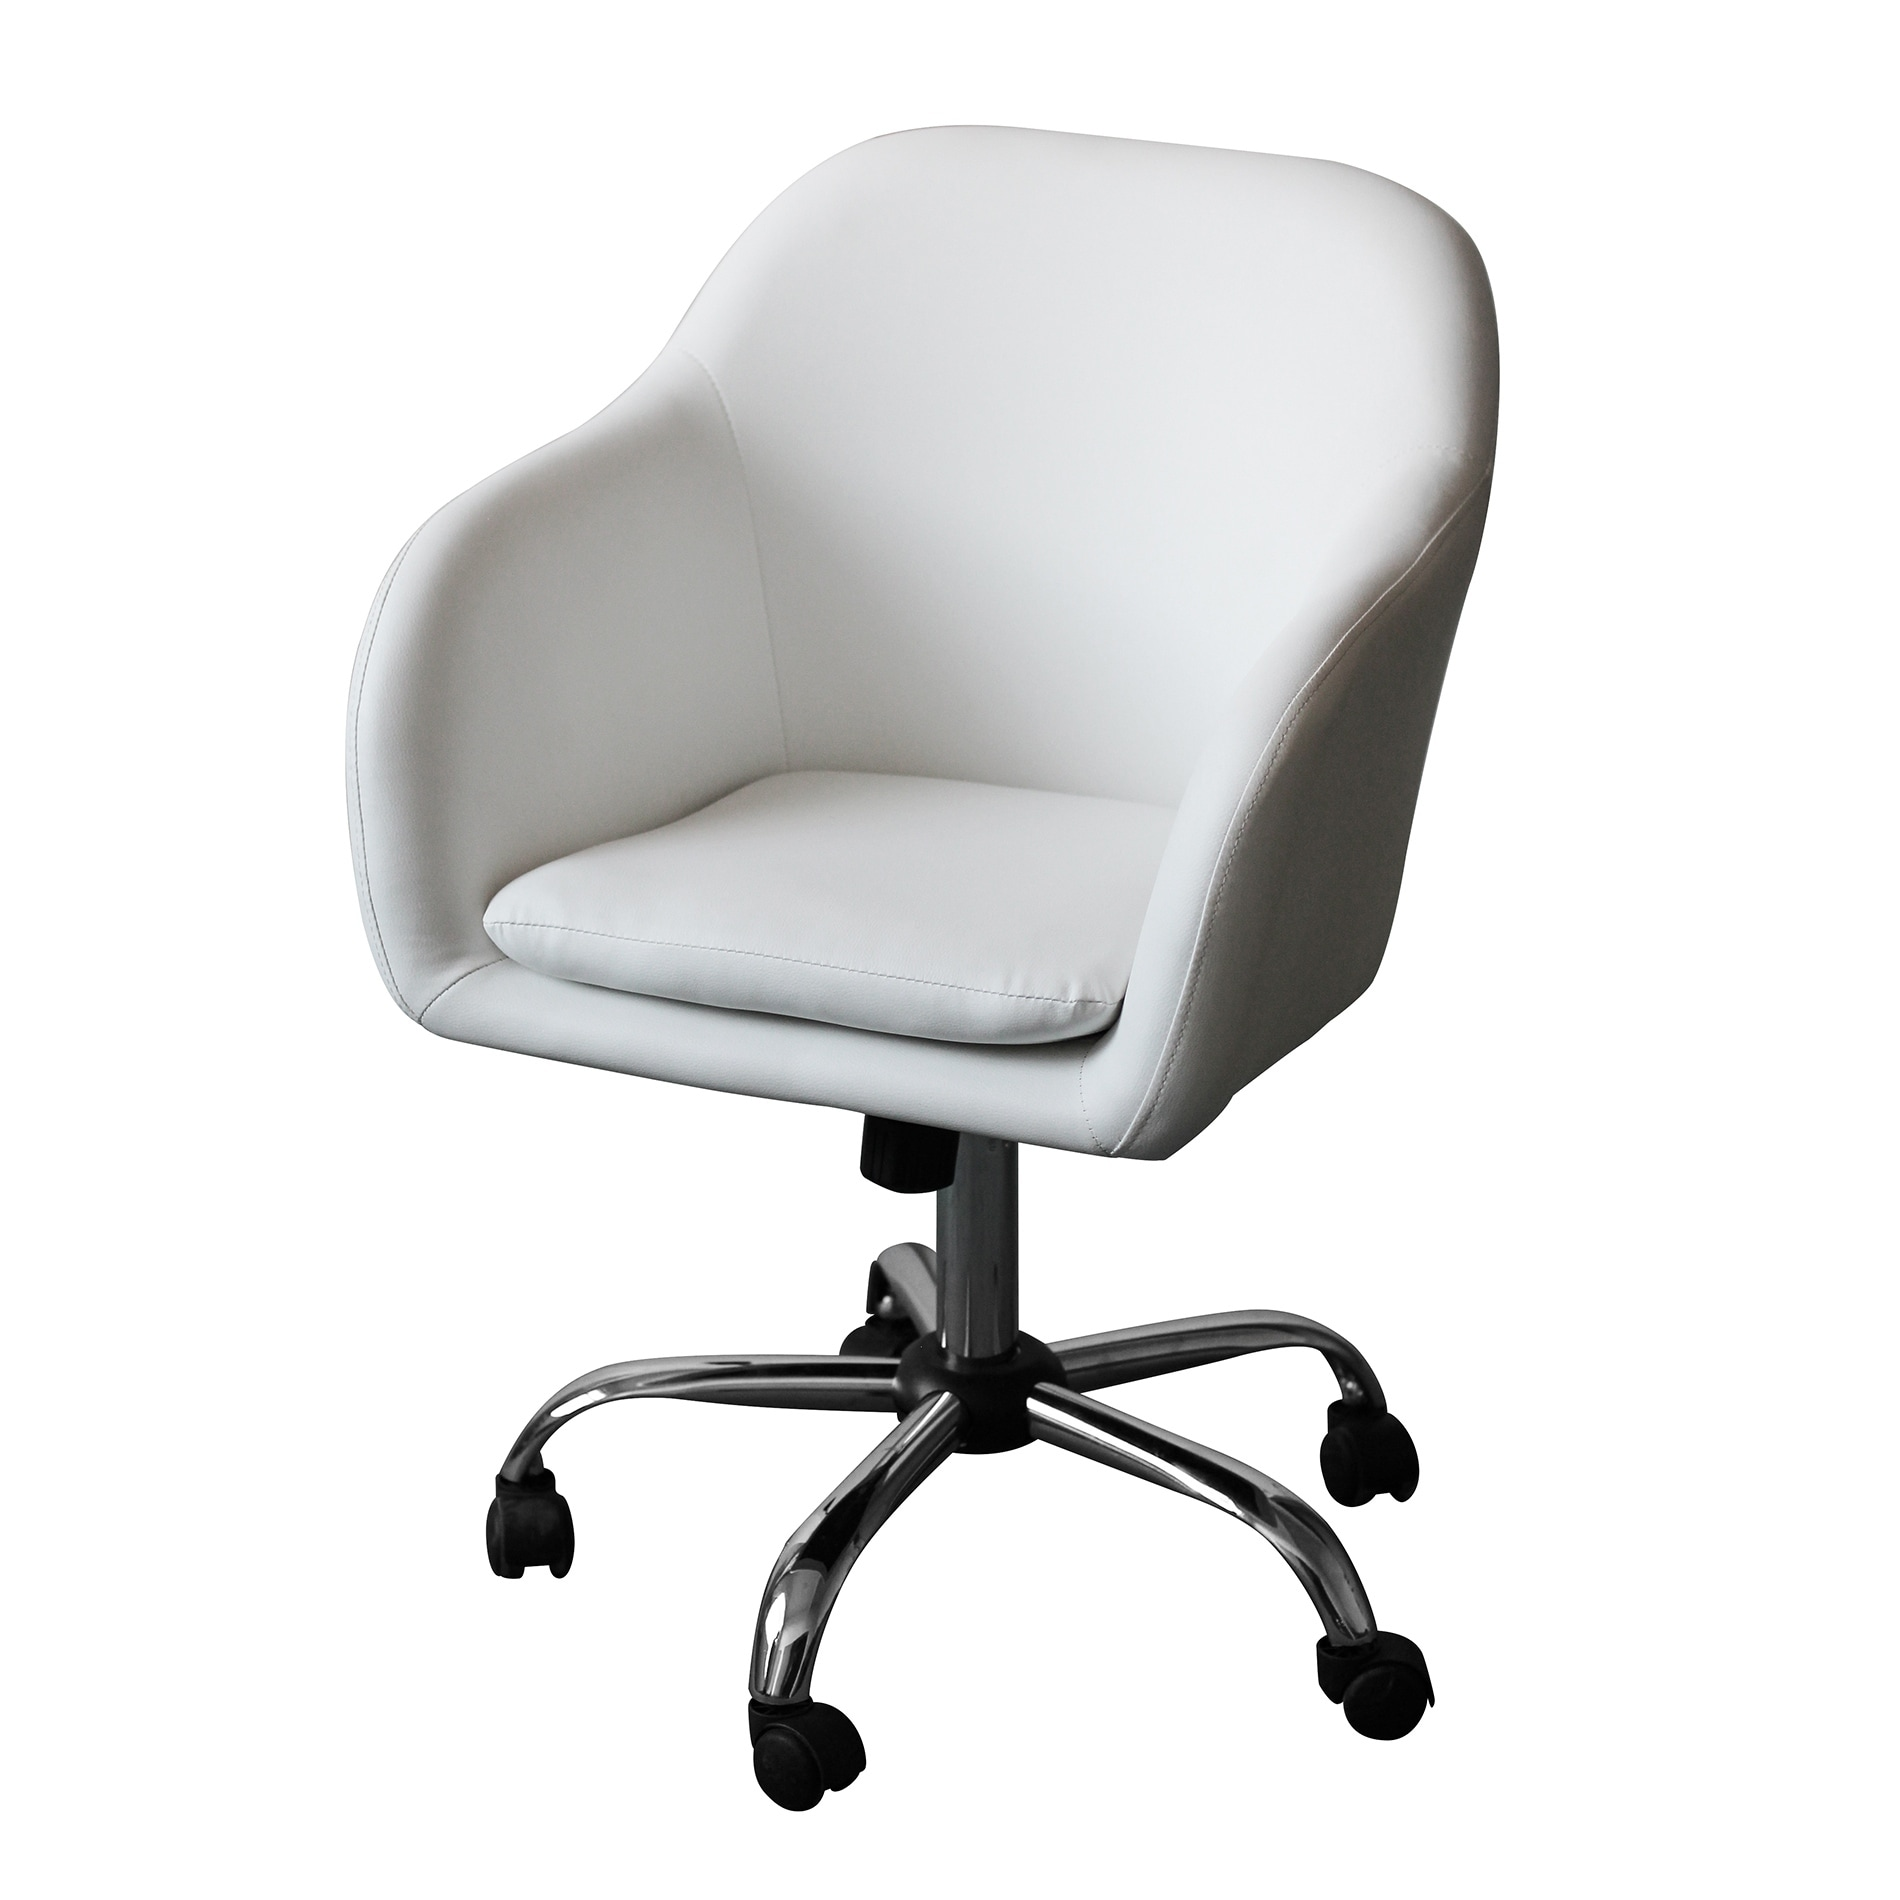 Shop home office chair executive mid back computer table desk chair swivel height adjustable ergonomic with armrest white on sale free shipping today